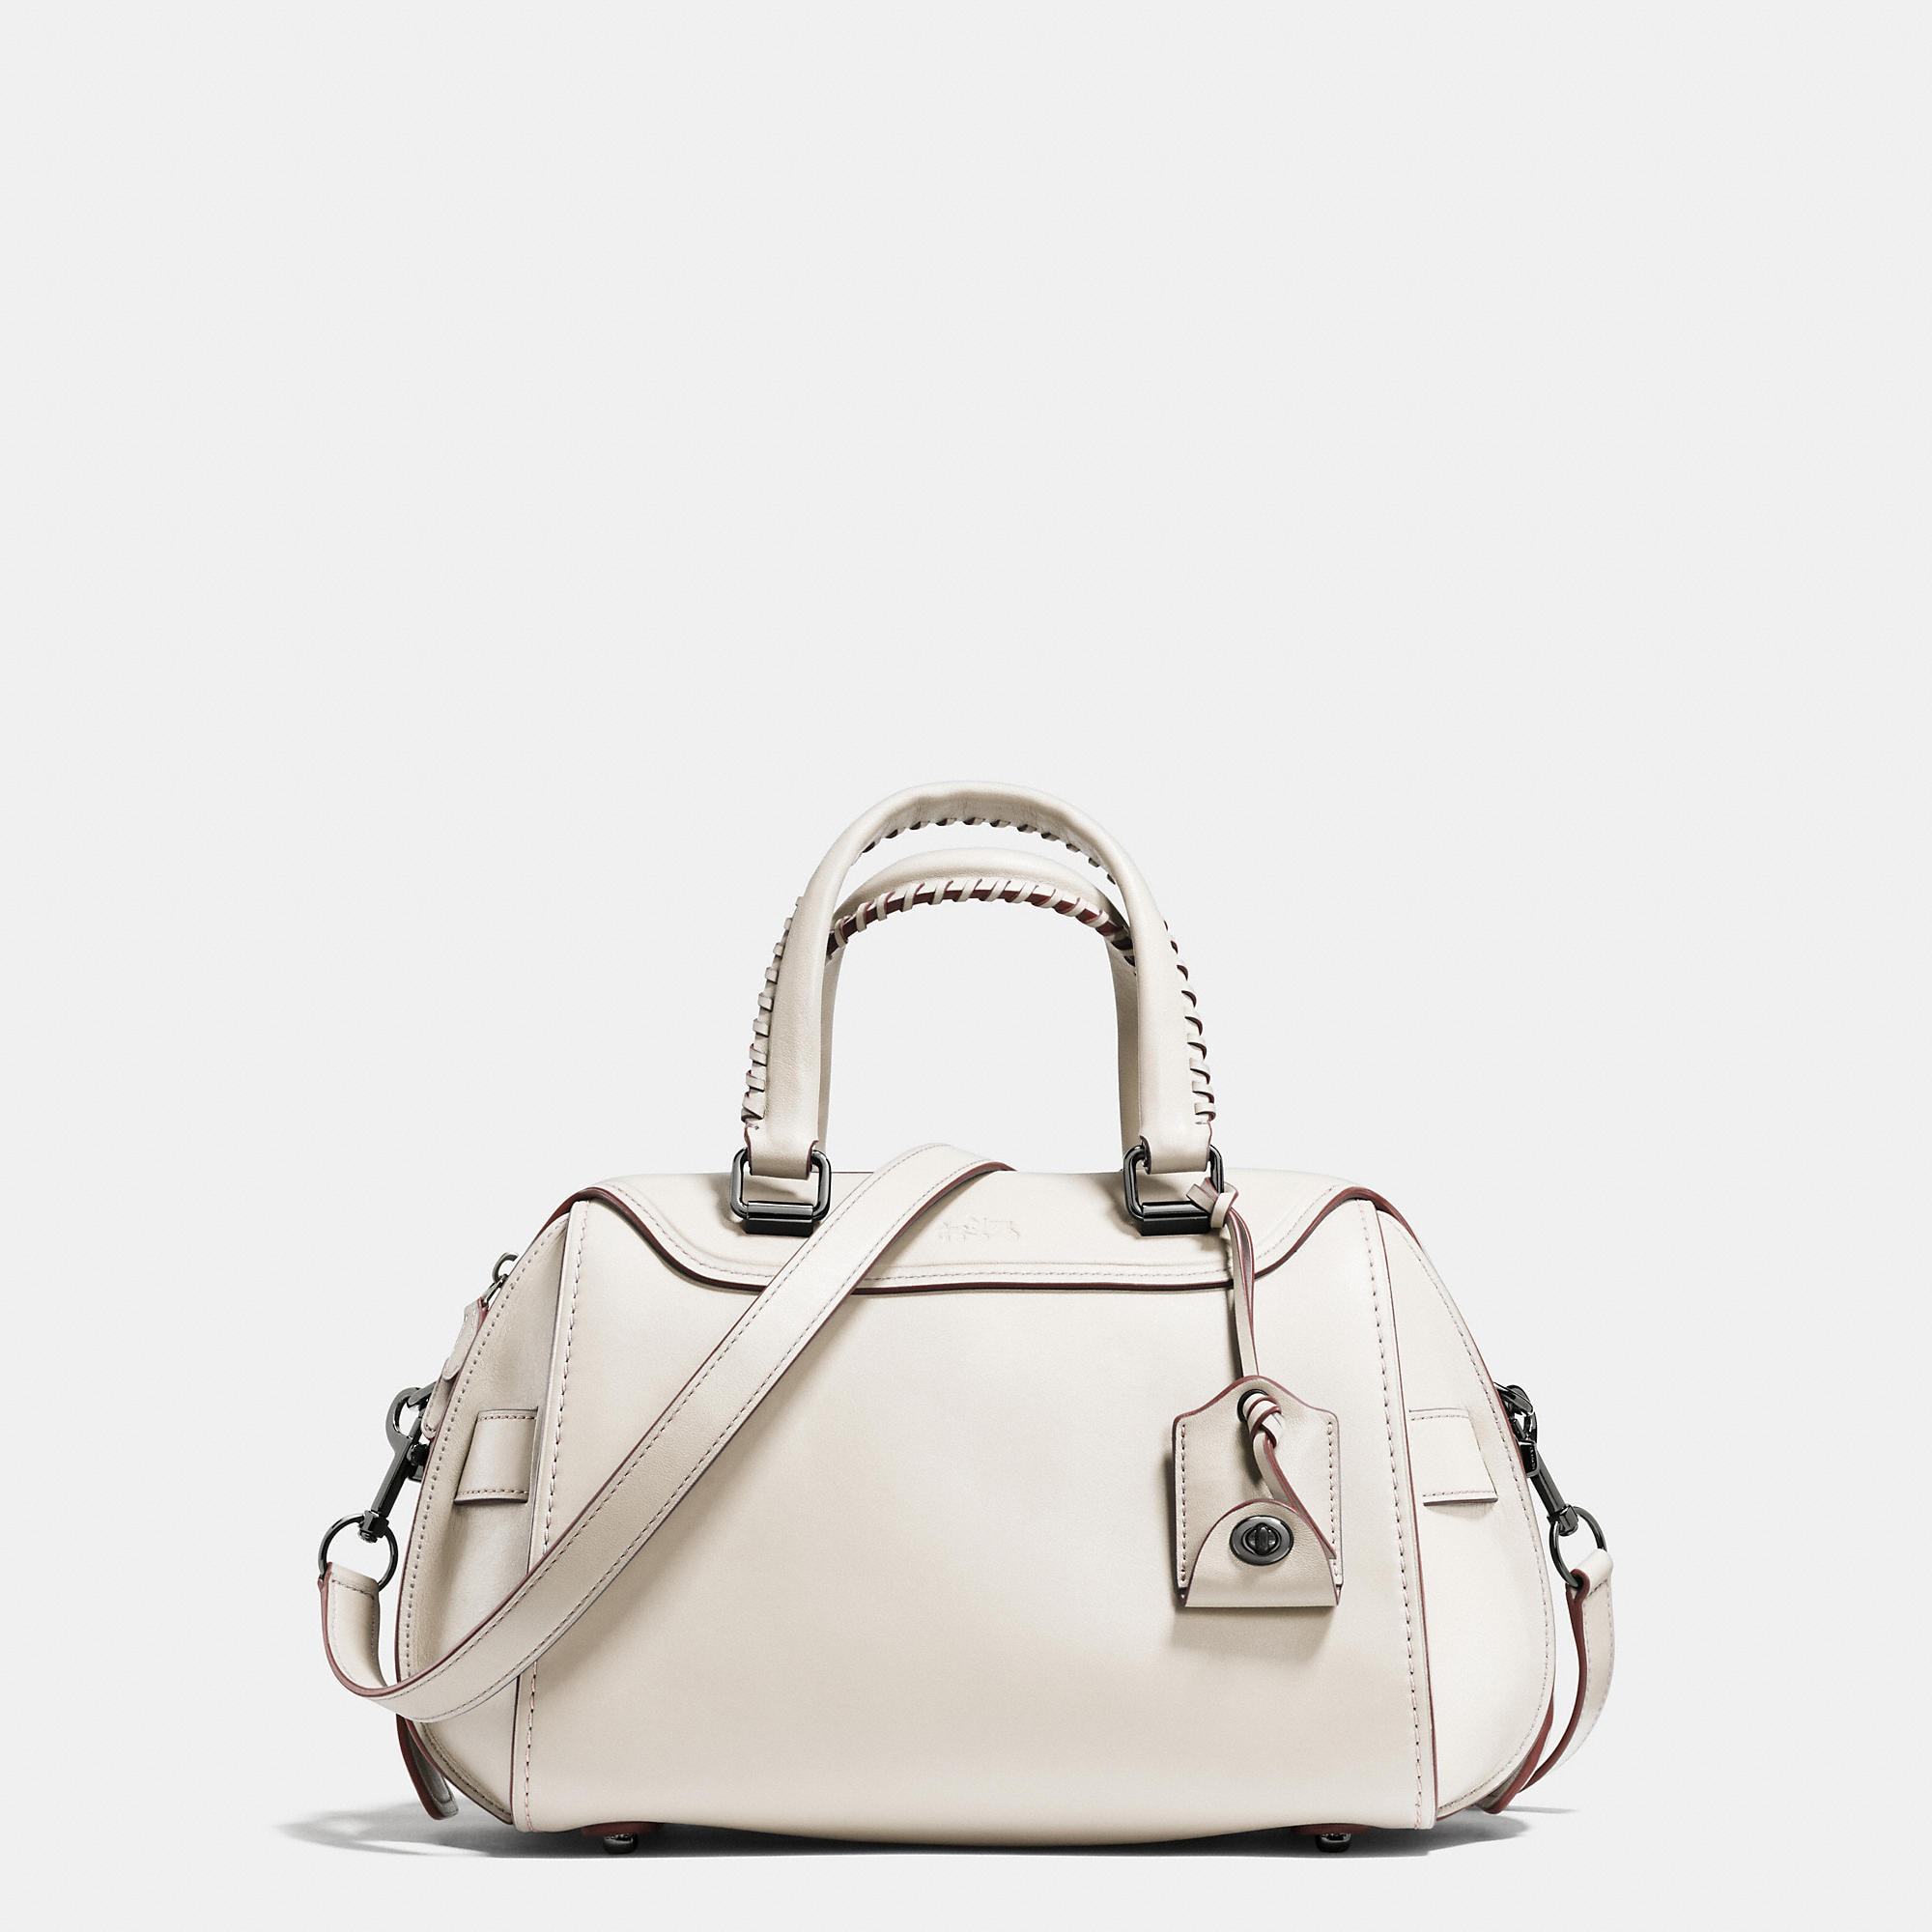 Coach 1941 Ace Satchel In Glovetanned Leather